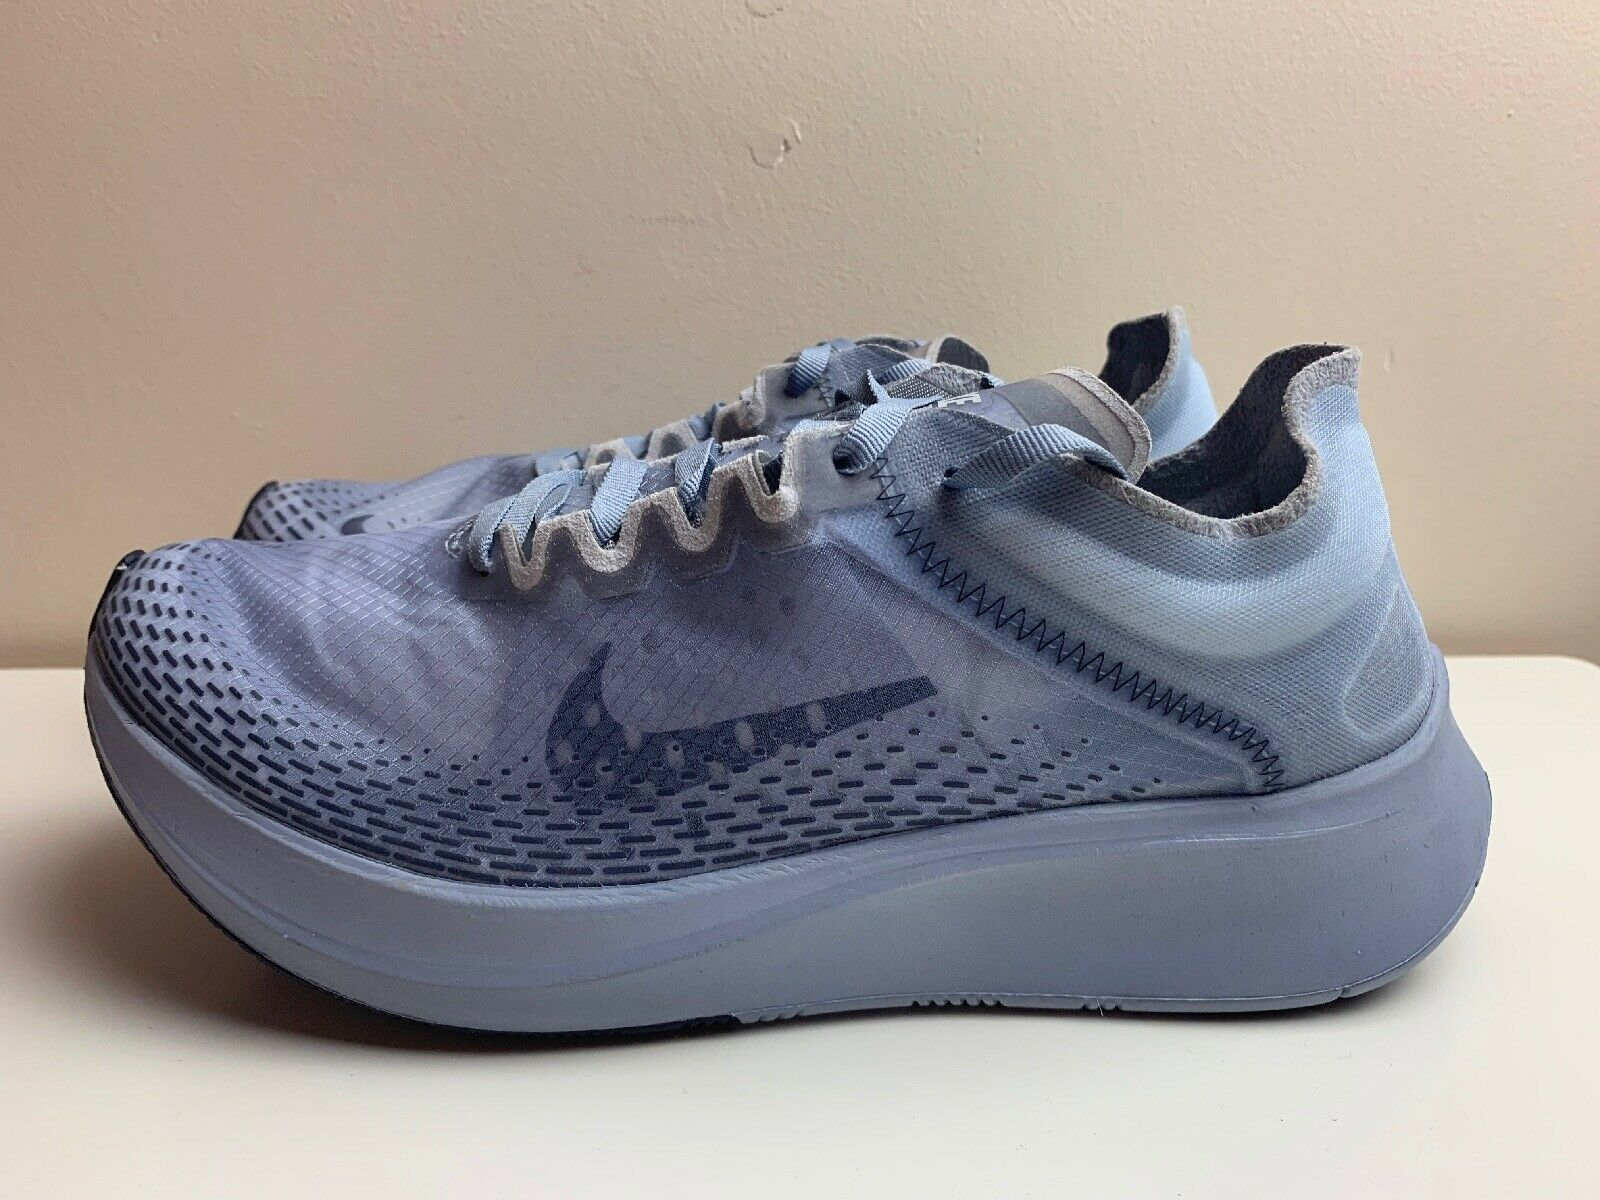 Nike Zoom Fly SP Fast Running shoes bluee UK 6.5 EUR 40.5 AT5242 440